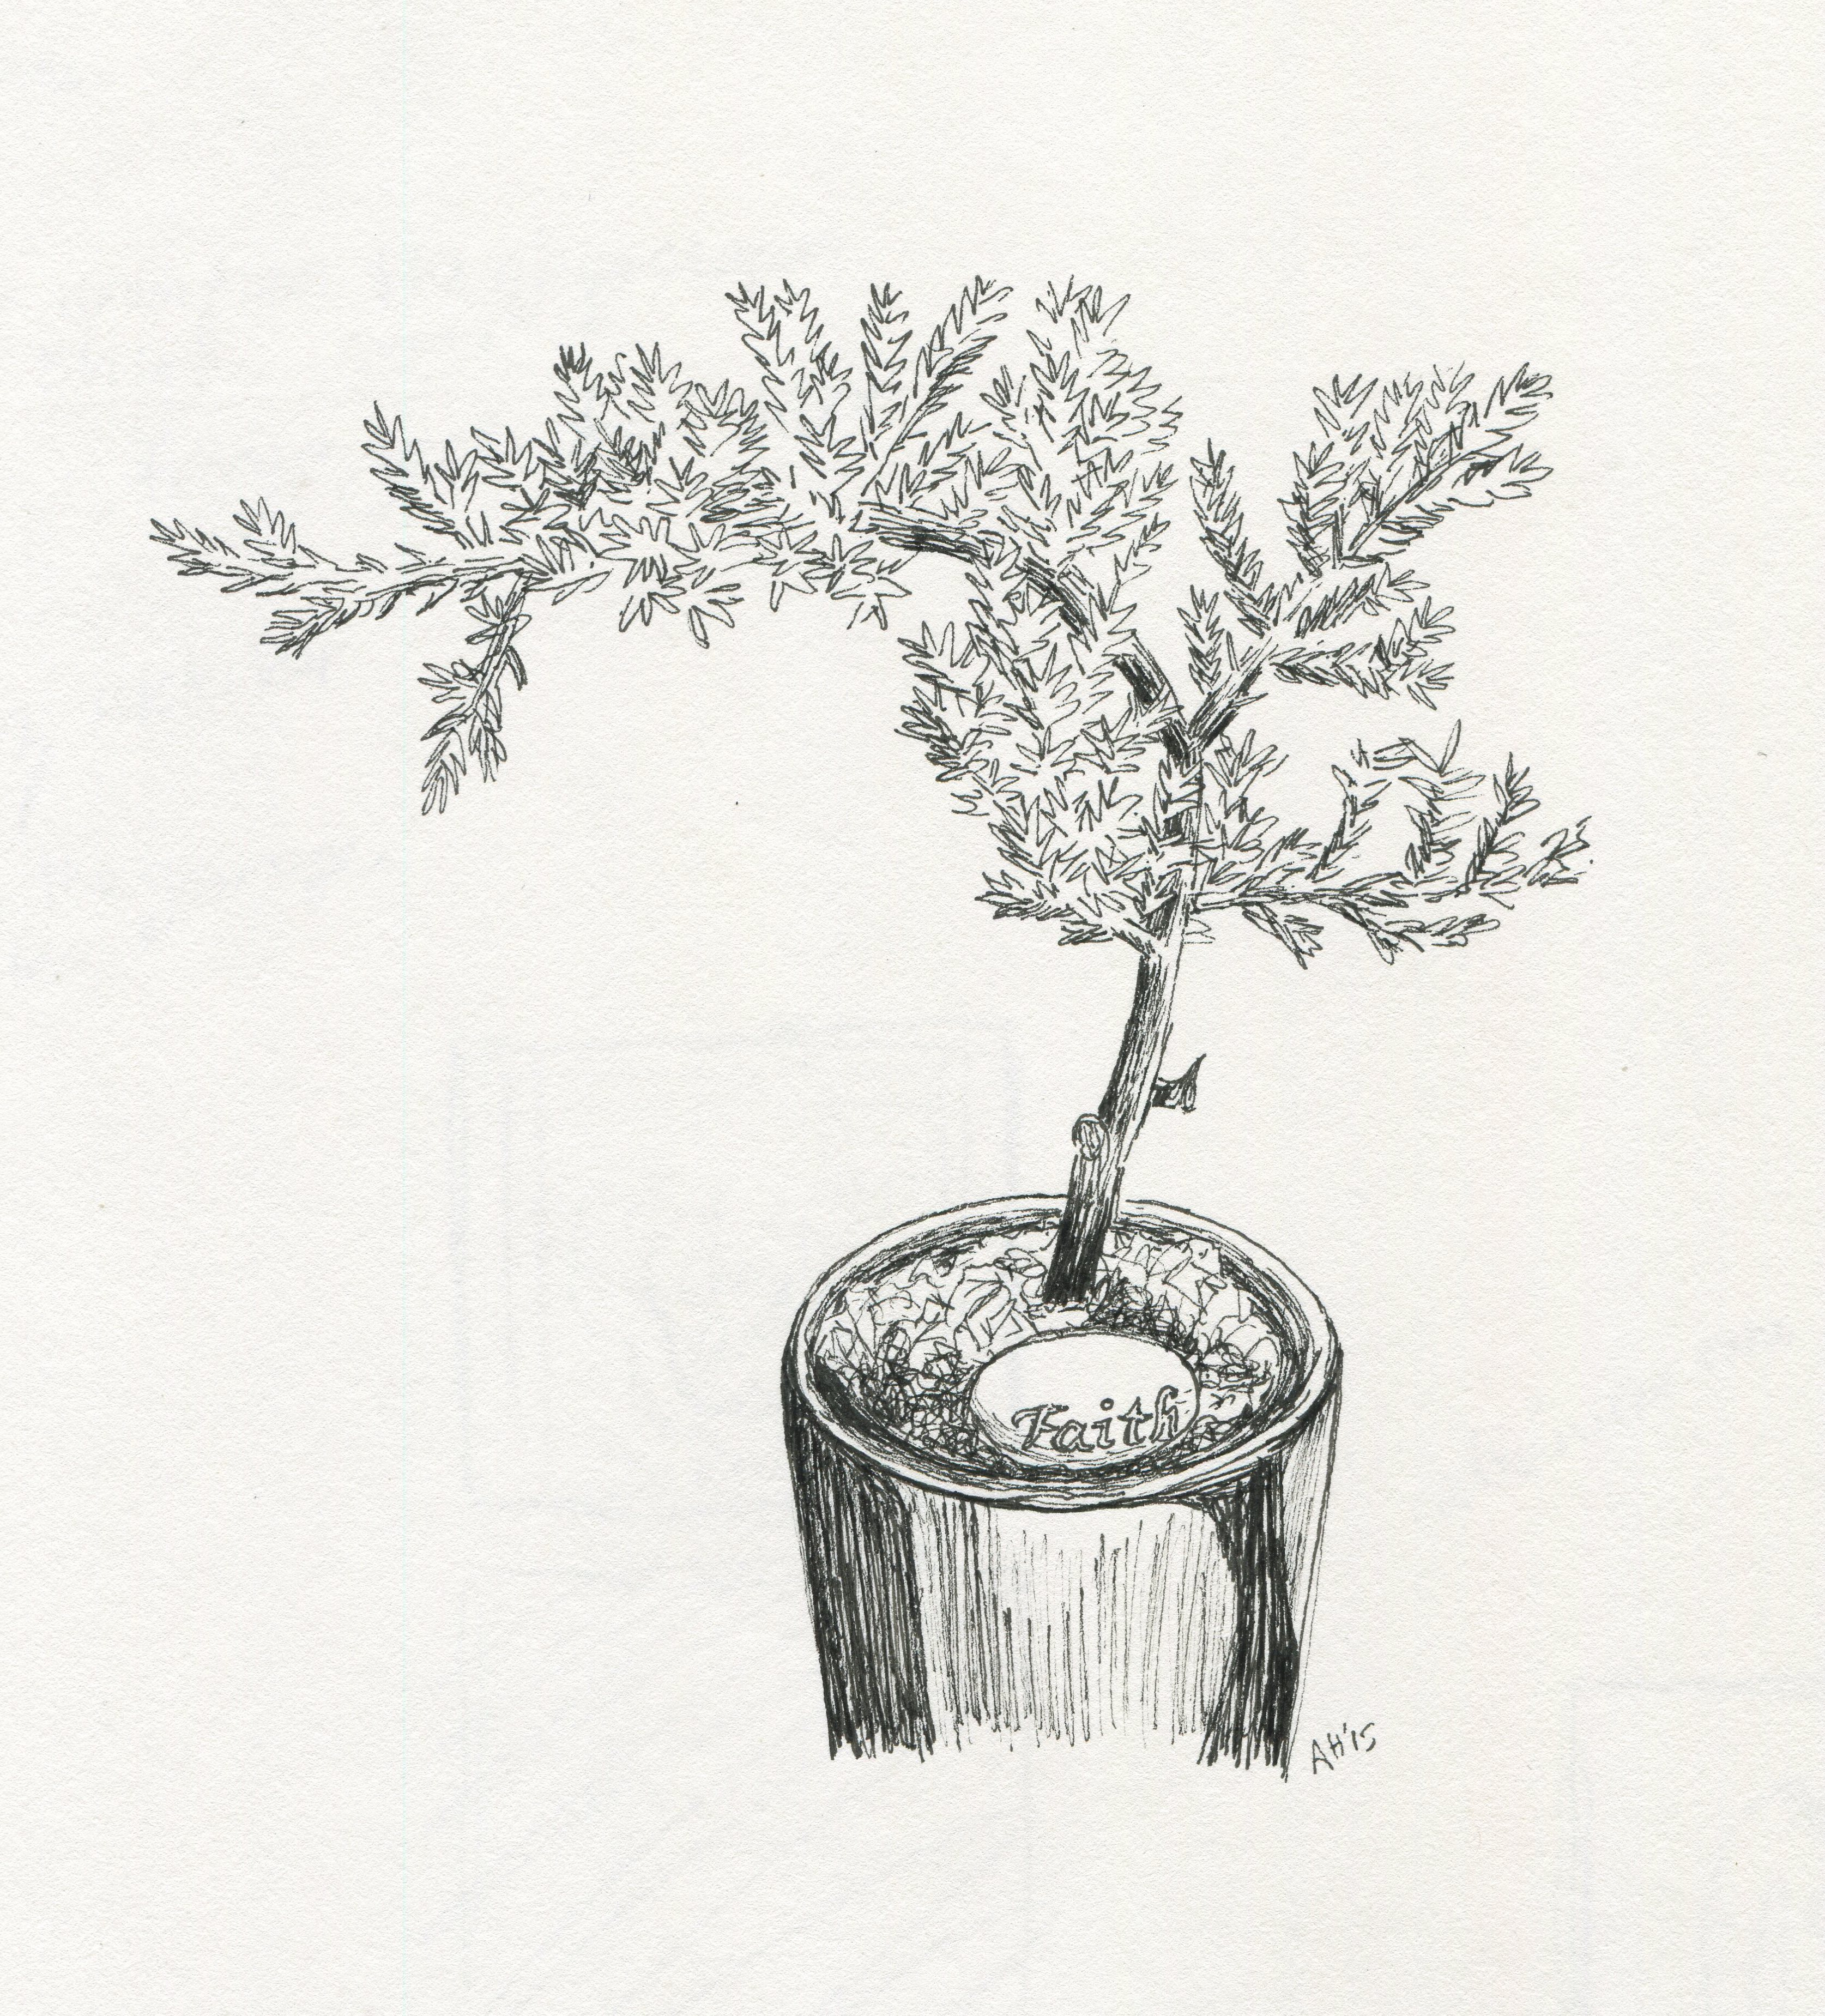 a sketch of a small bonsai tree with a pebble that reads faith by alleanna harris